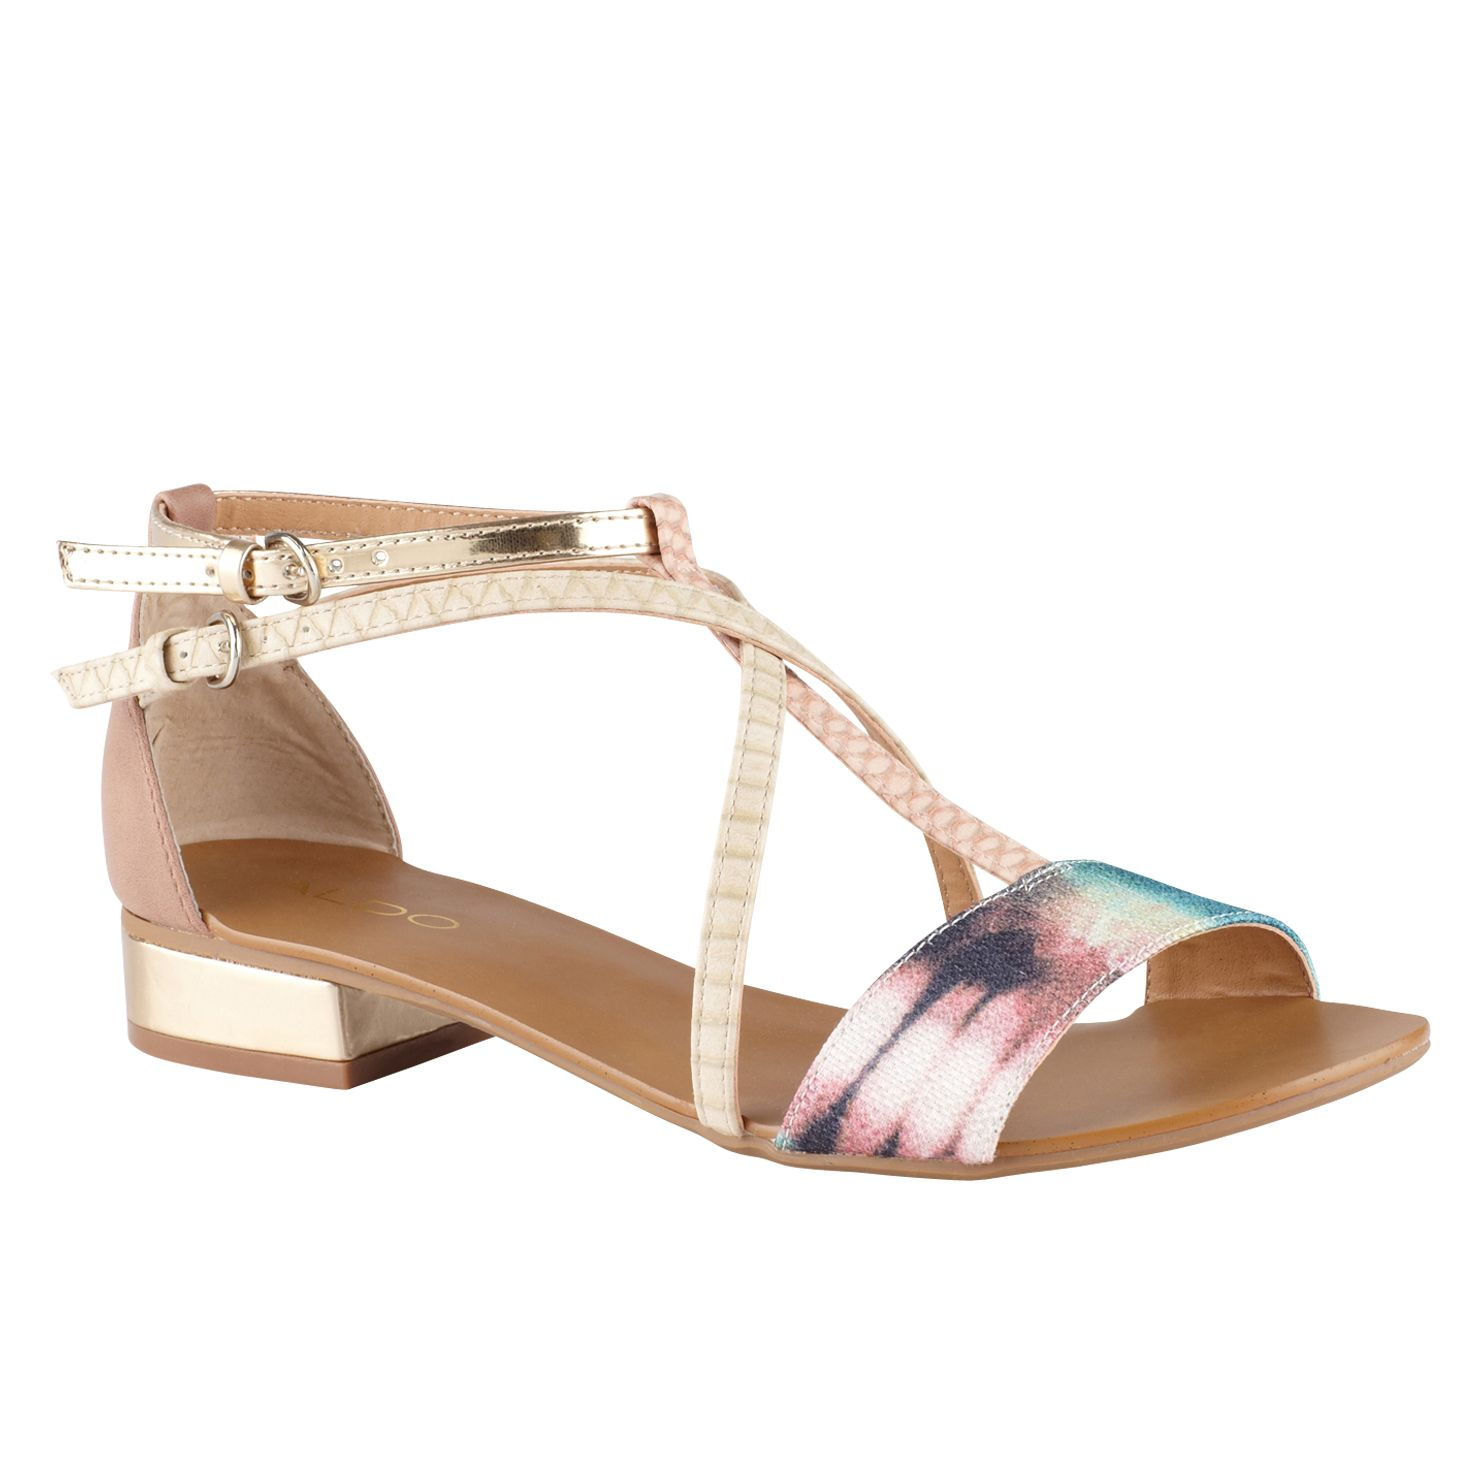 Kedearien strapped block heel sandals